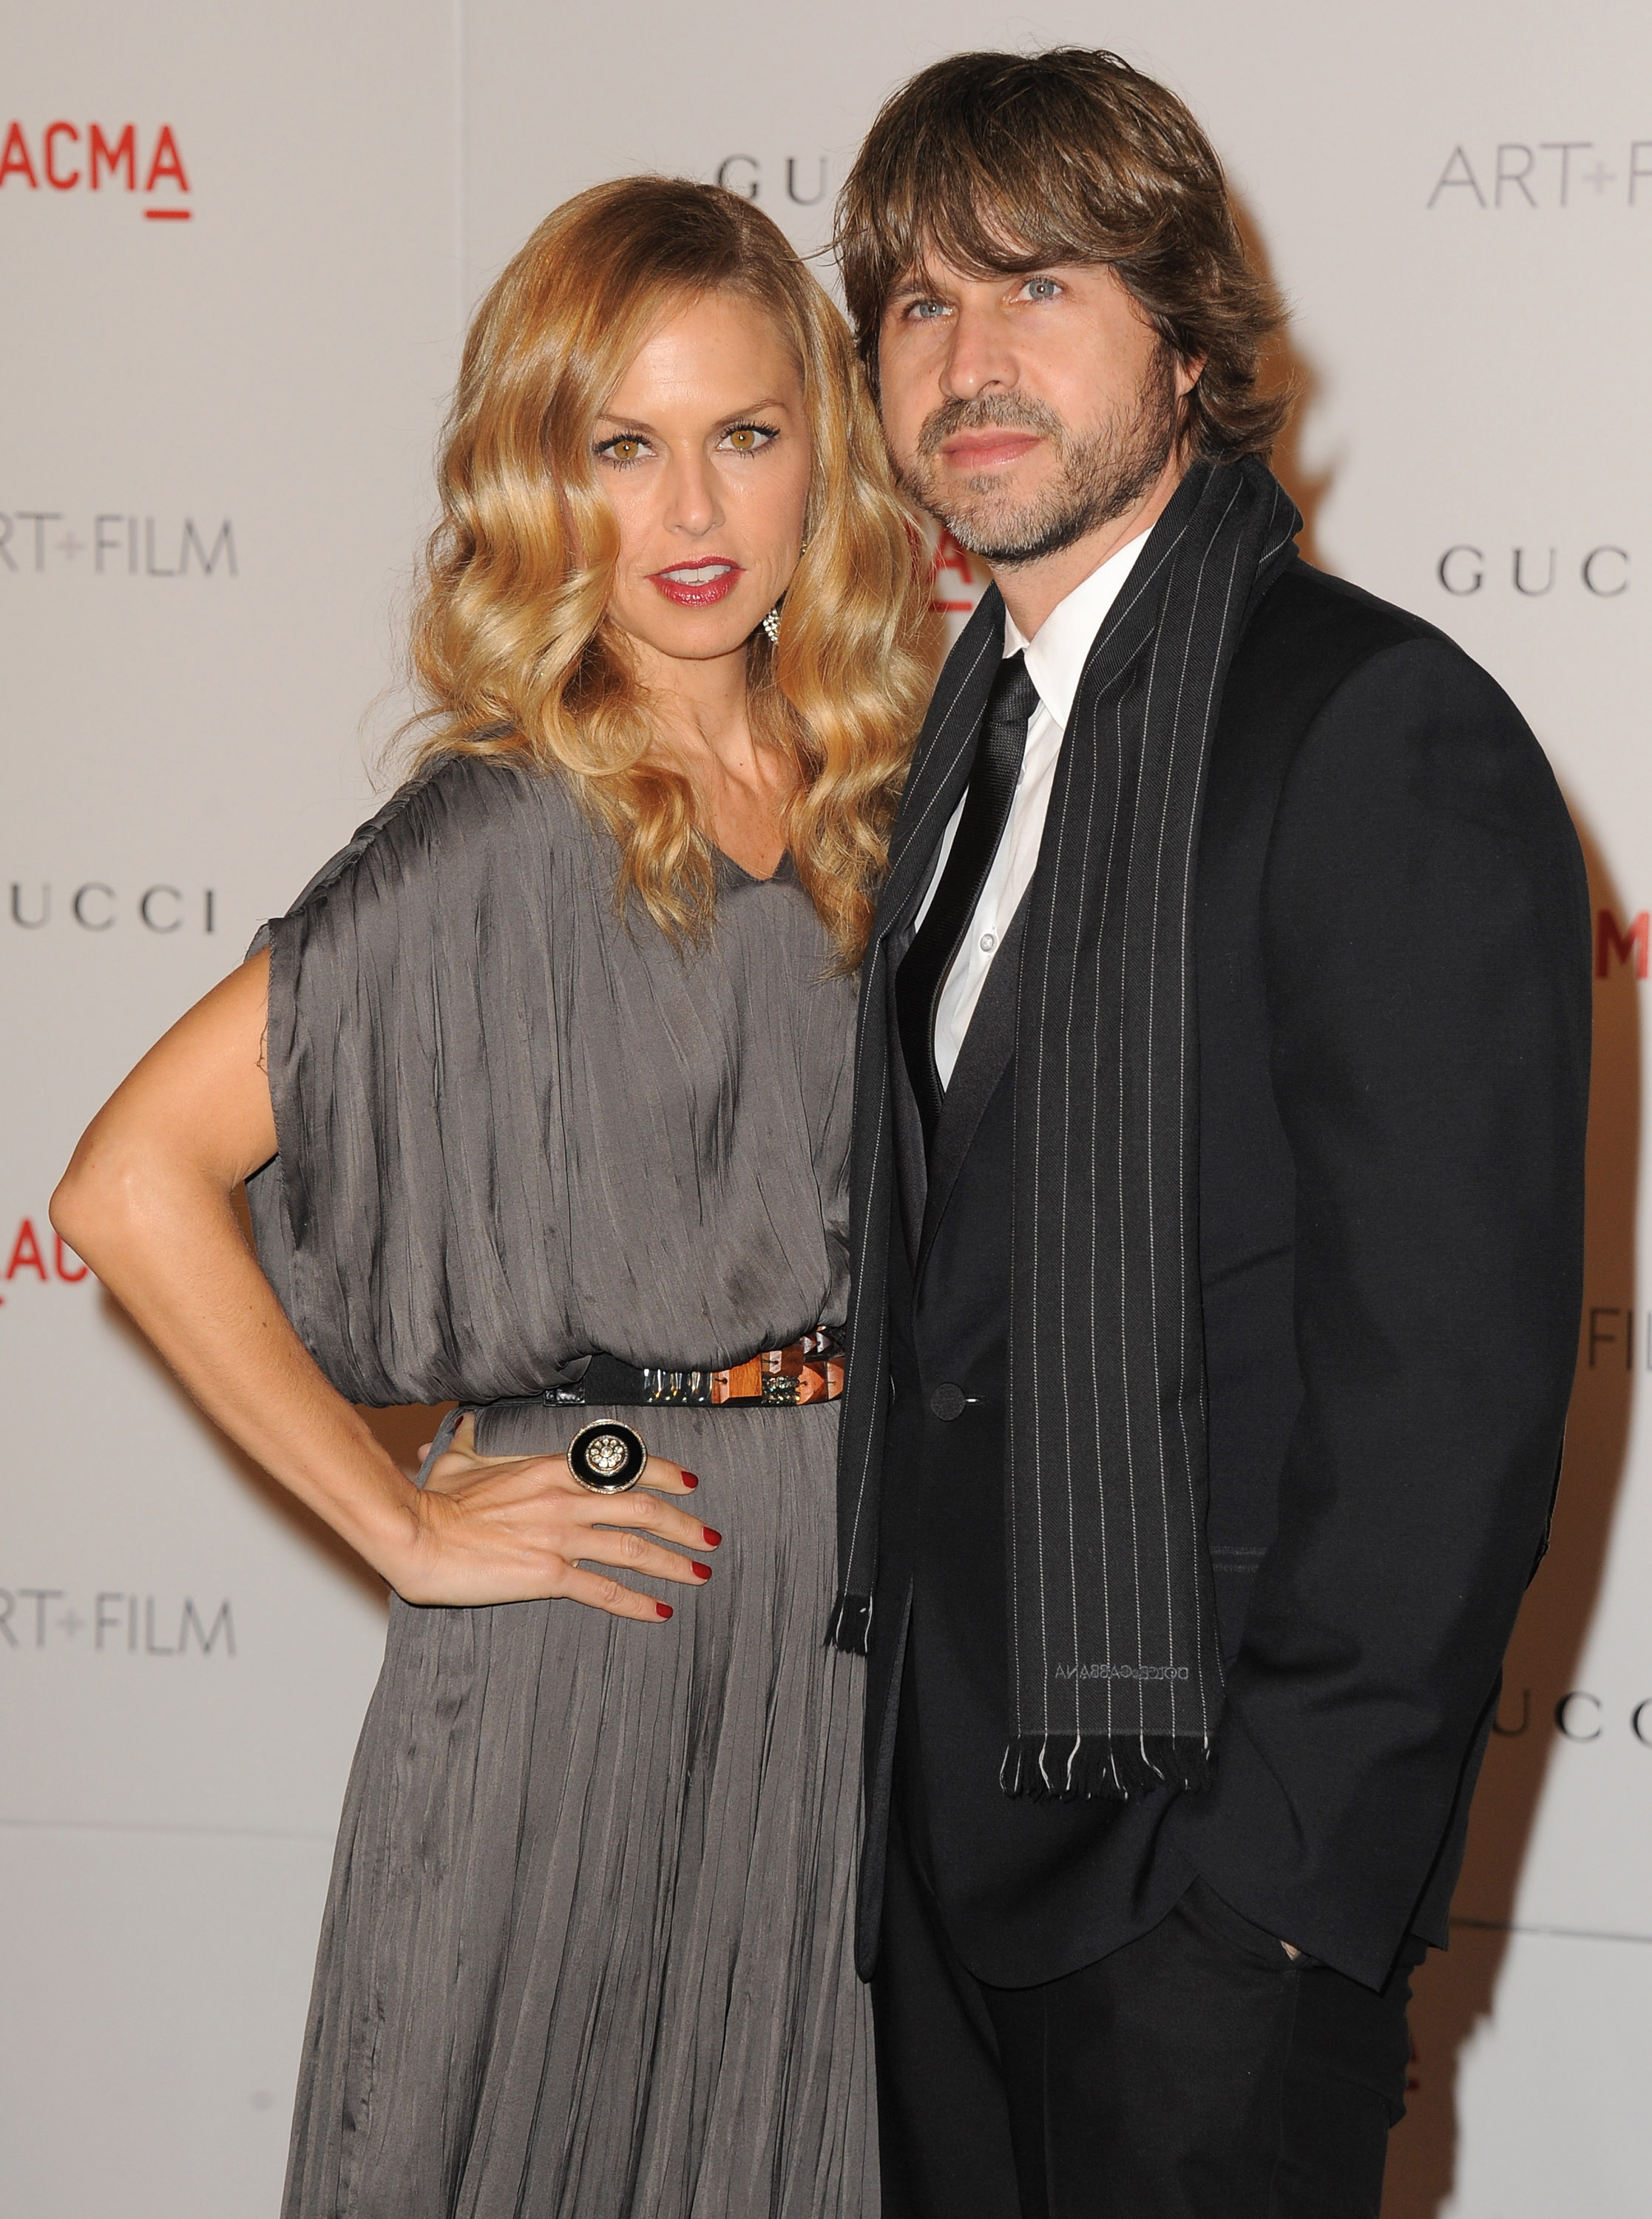 Rachel Zoe and husband Rodger Berman.